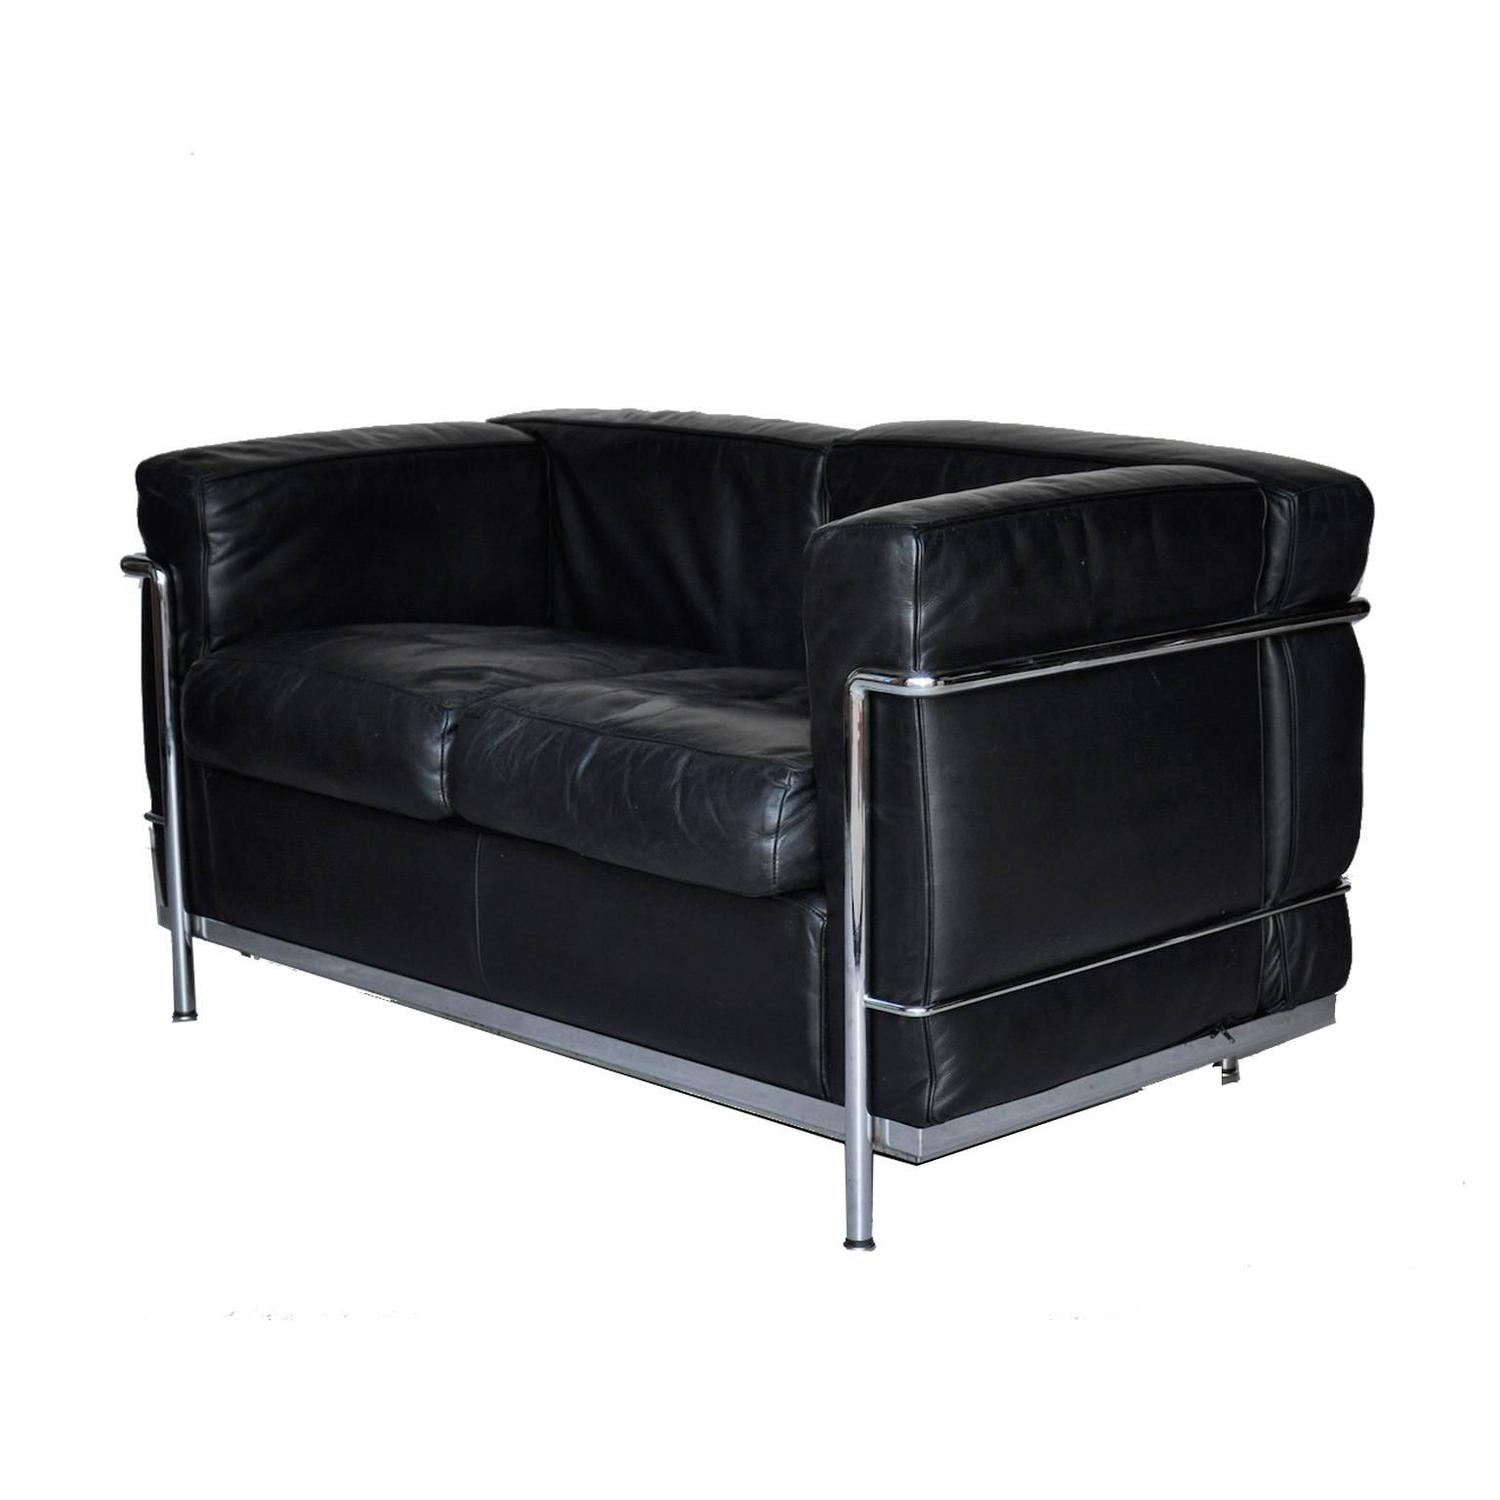 Le corbusier lc2 for cassina leather sofa at 1stdibs Le corbusier lc2 sofa